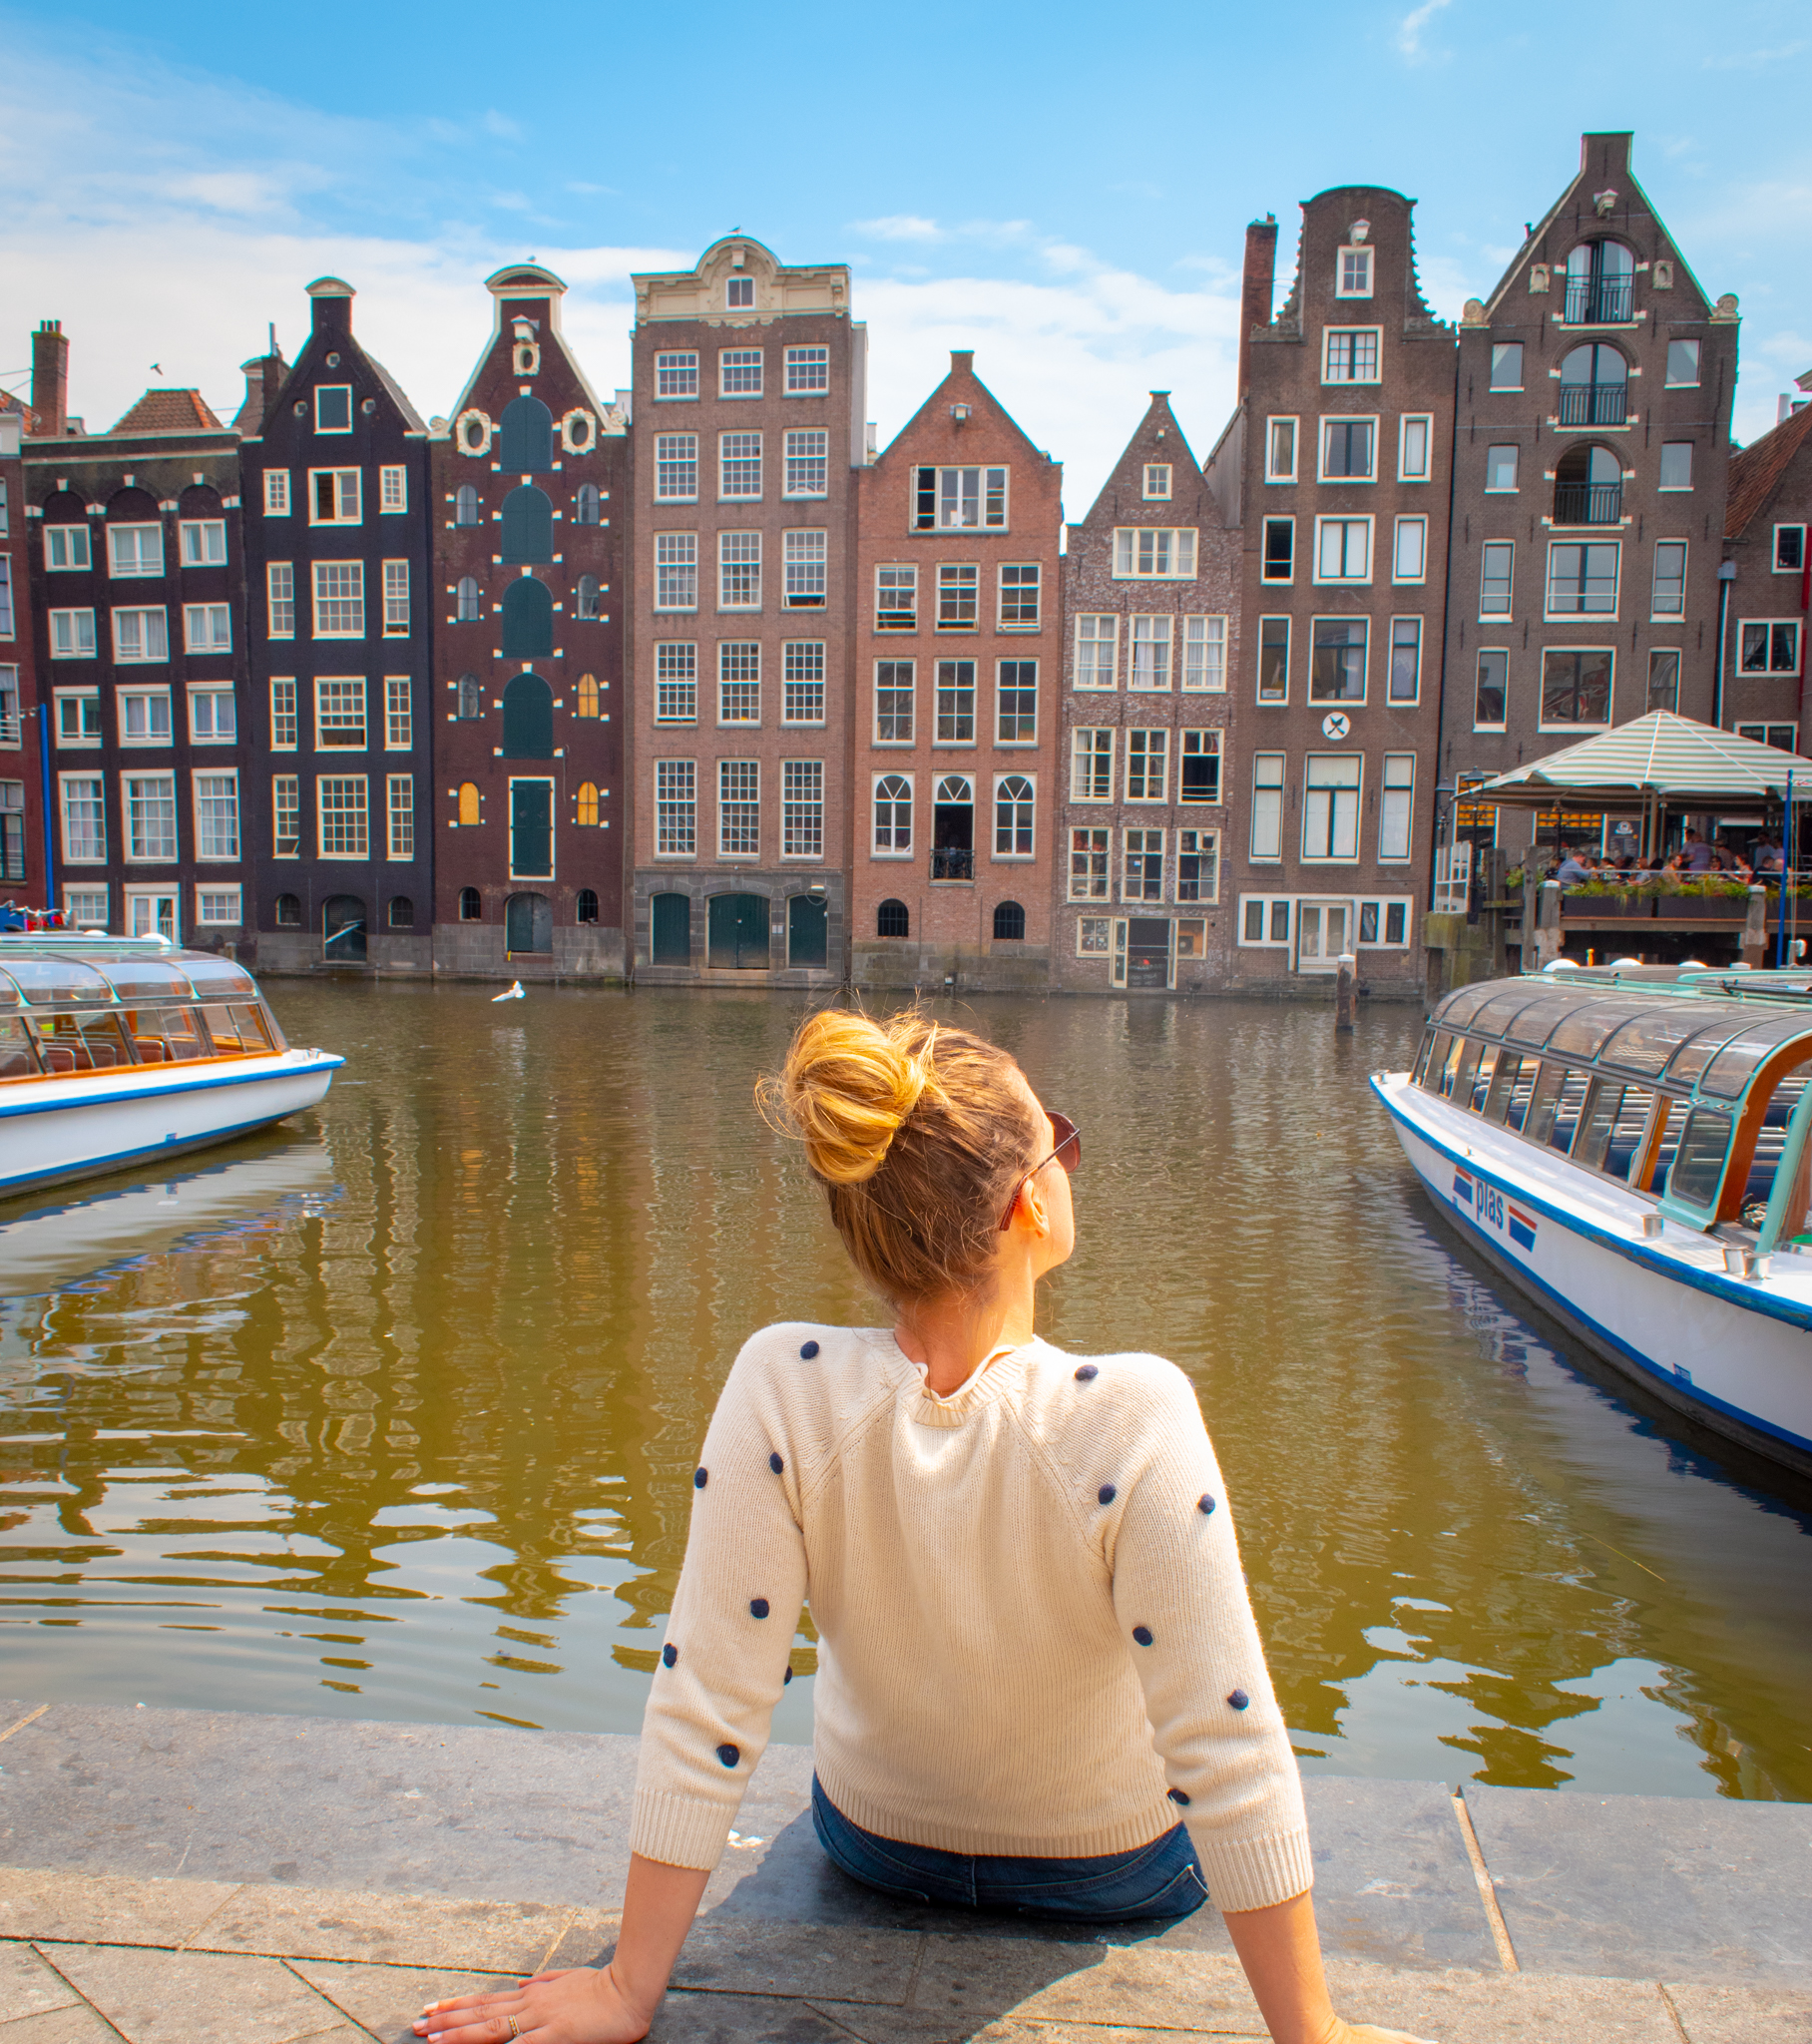 uprooted-traveler-canal-houses-amsterdam-netherlands-guide-vegan-jordaan